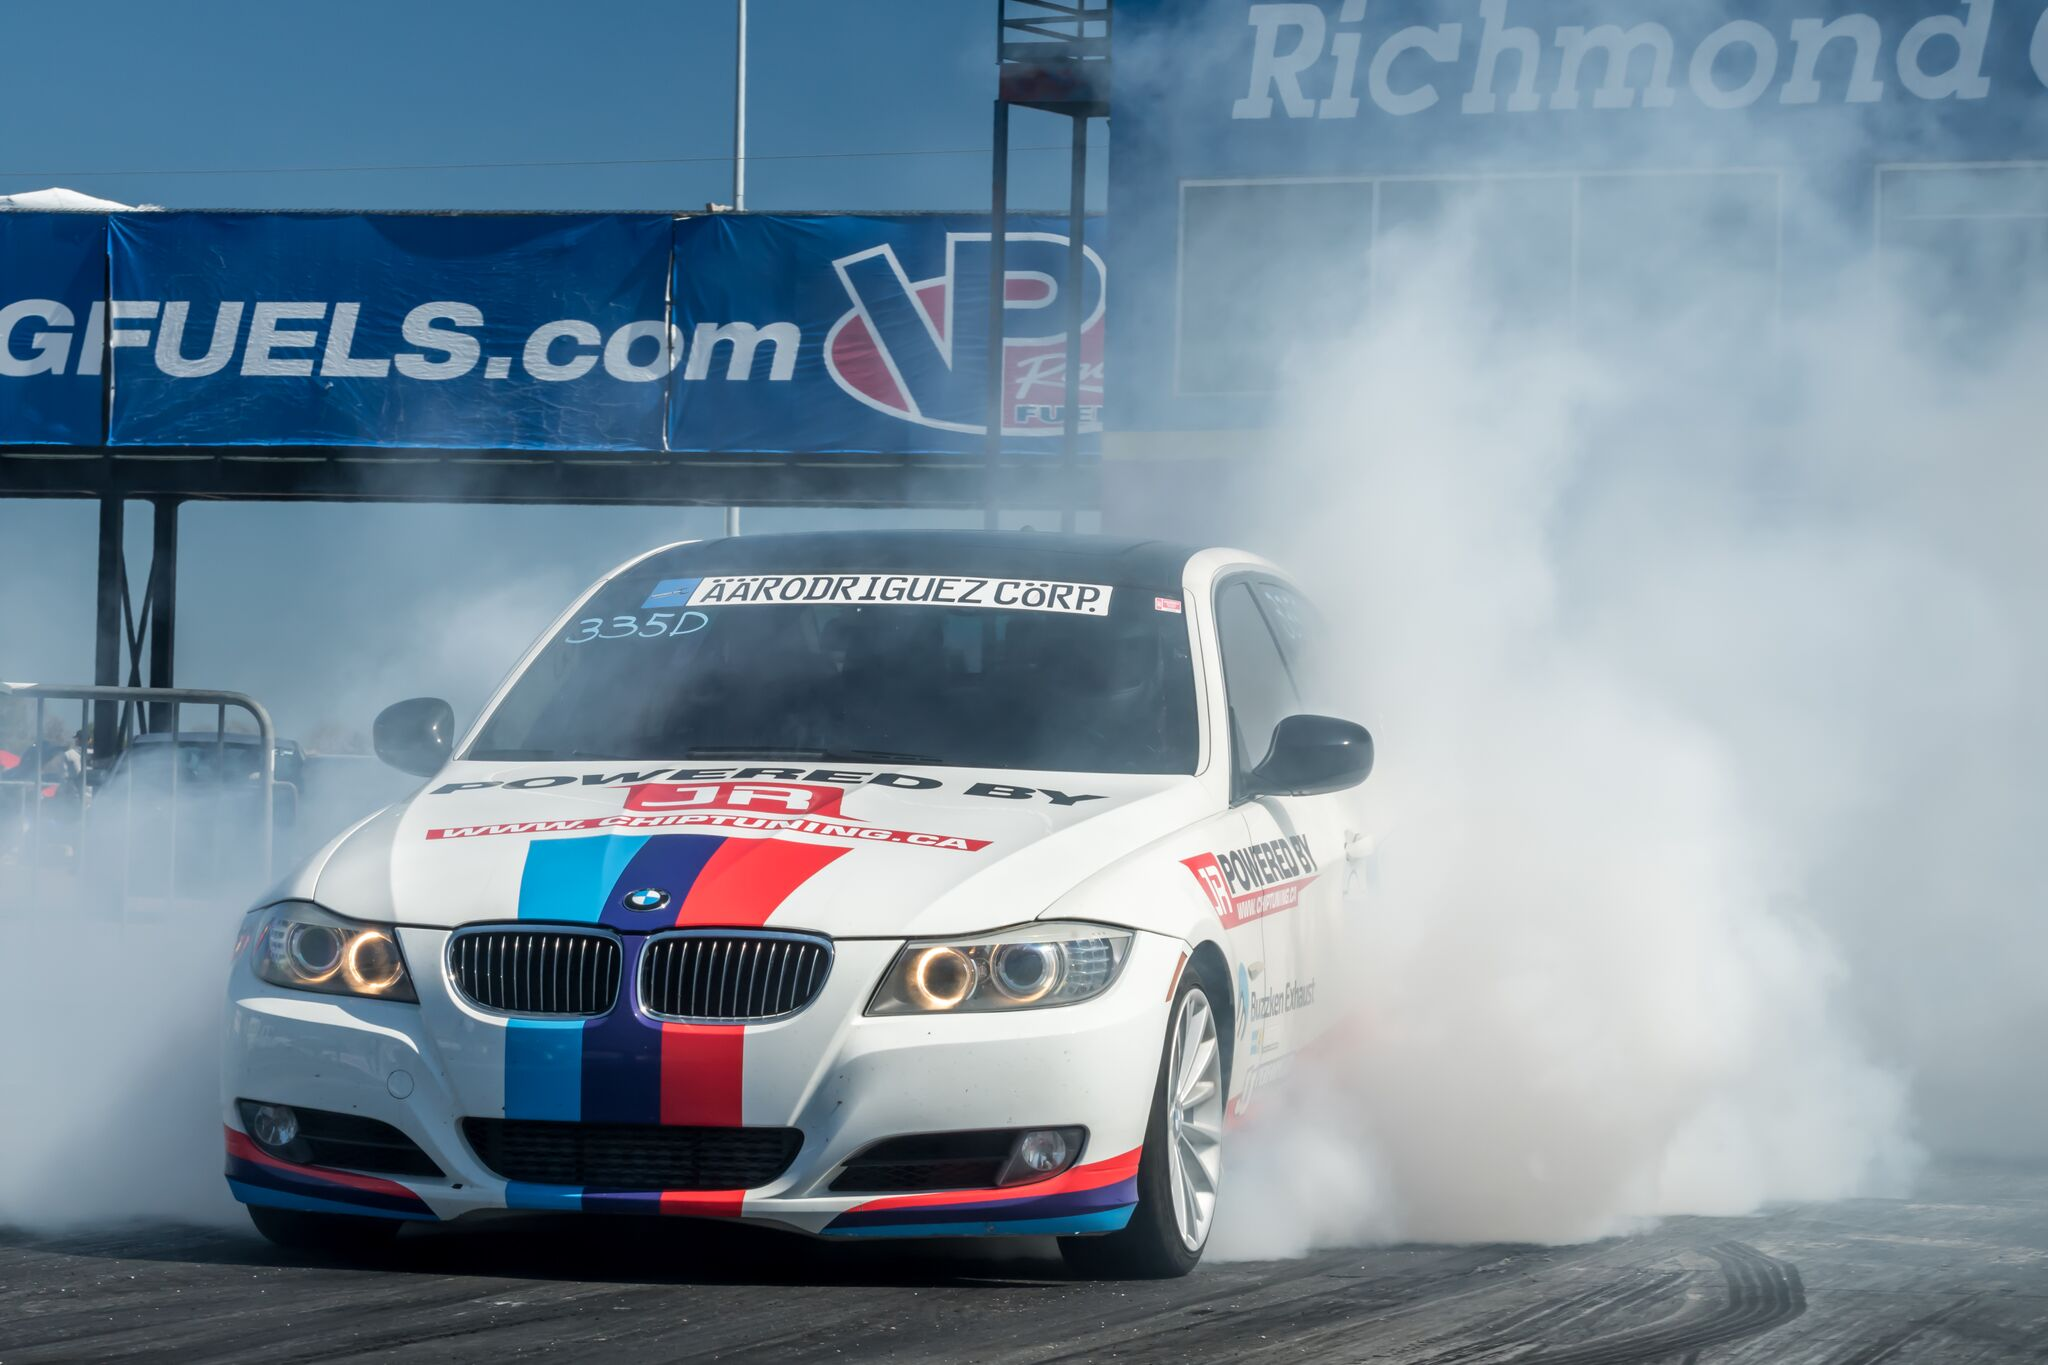 BMW 335D World Record for the 1/4 Mile, OBD Tuning and New Hybrid Turbo Kits